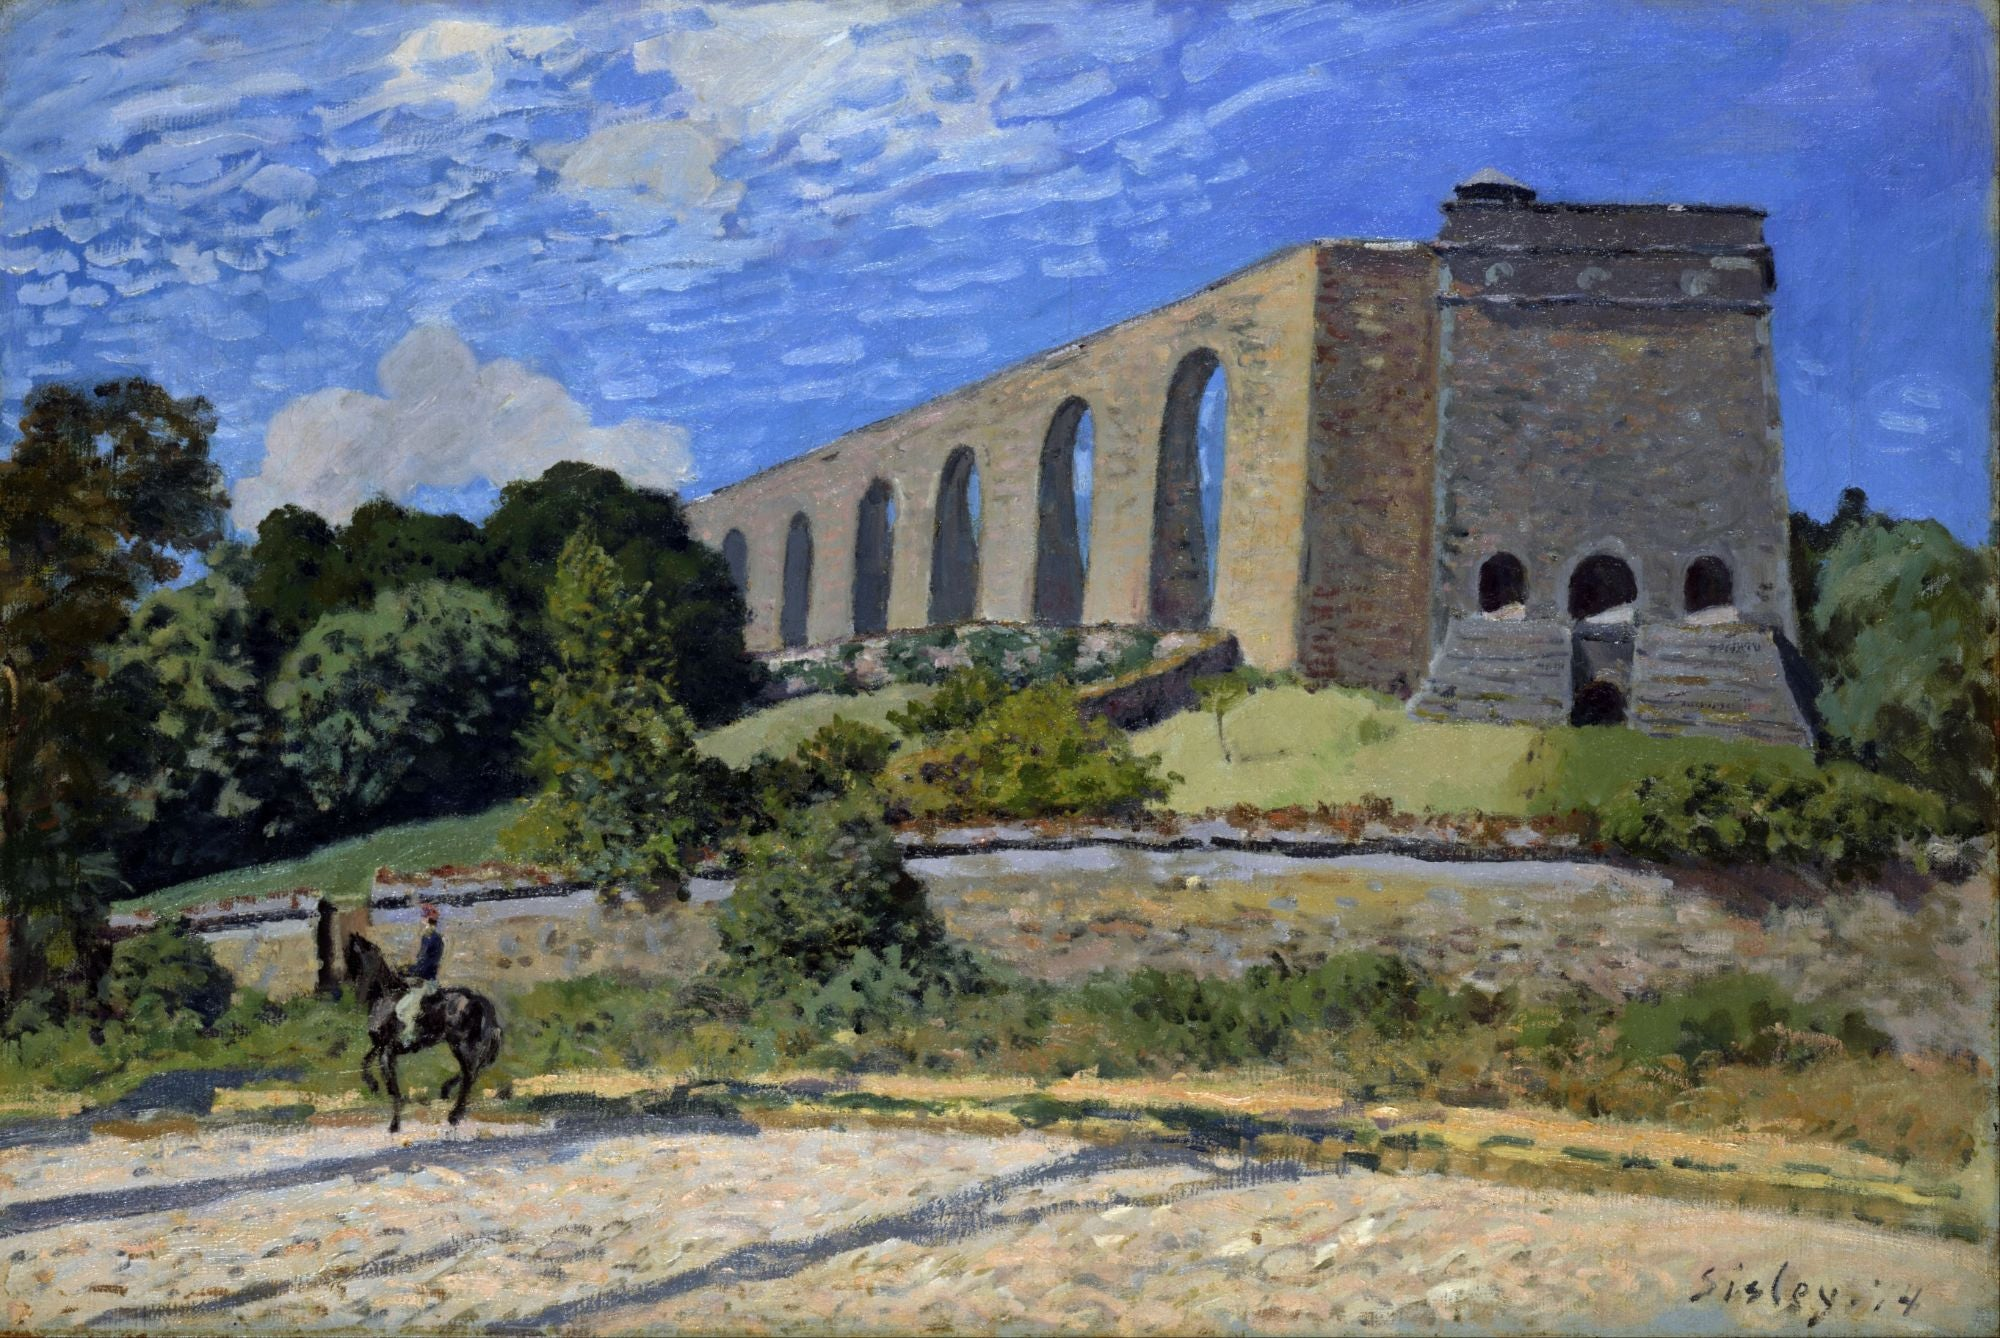 Alfred Sisley | Buy Posters, Frames, Canvas, Digital Art & Large Size Prints Of The Famous Old Master's Artworks